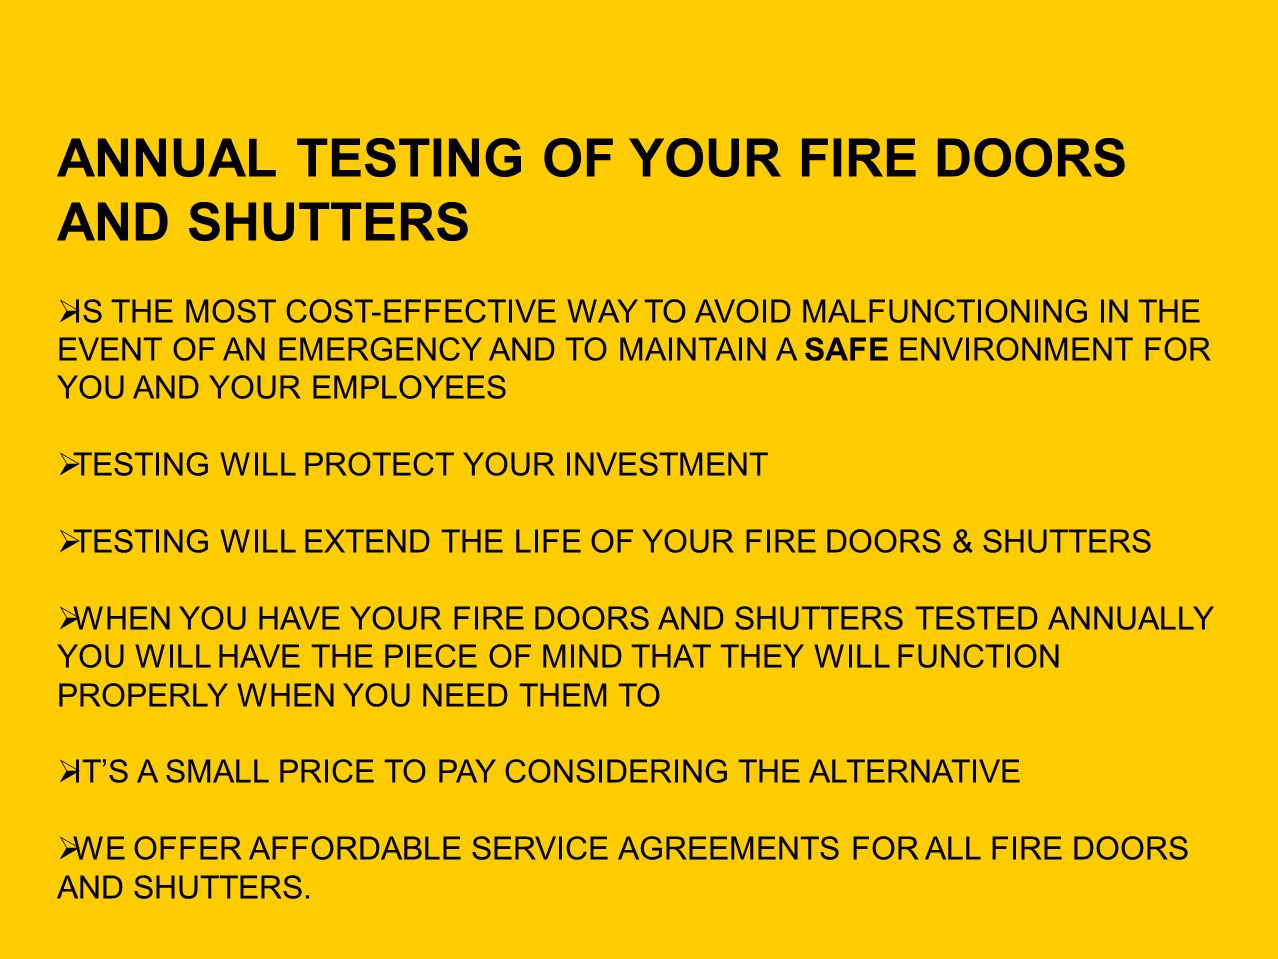 ANNUAL TESTING OF YOUR FIRE DOORS AND SHUTTERS IS THE MOST COST-EFFECTIVE WAY TO AVOID MALFUNCTIONING IN THE EVENT OF AN EMERGENCY AND TO MAINTAIN A S